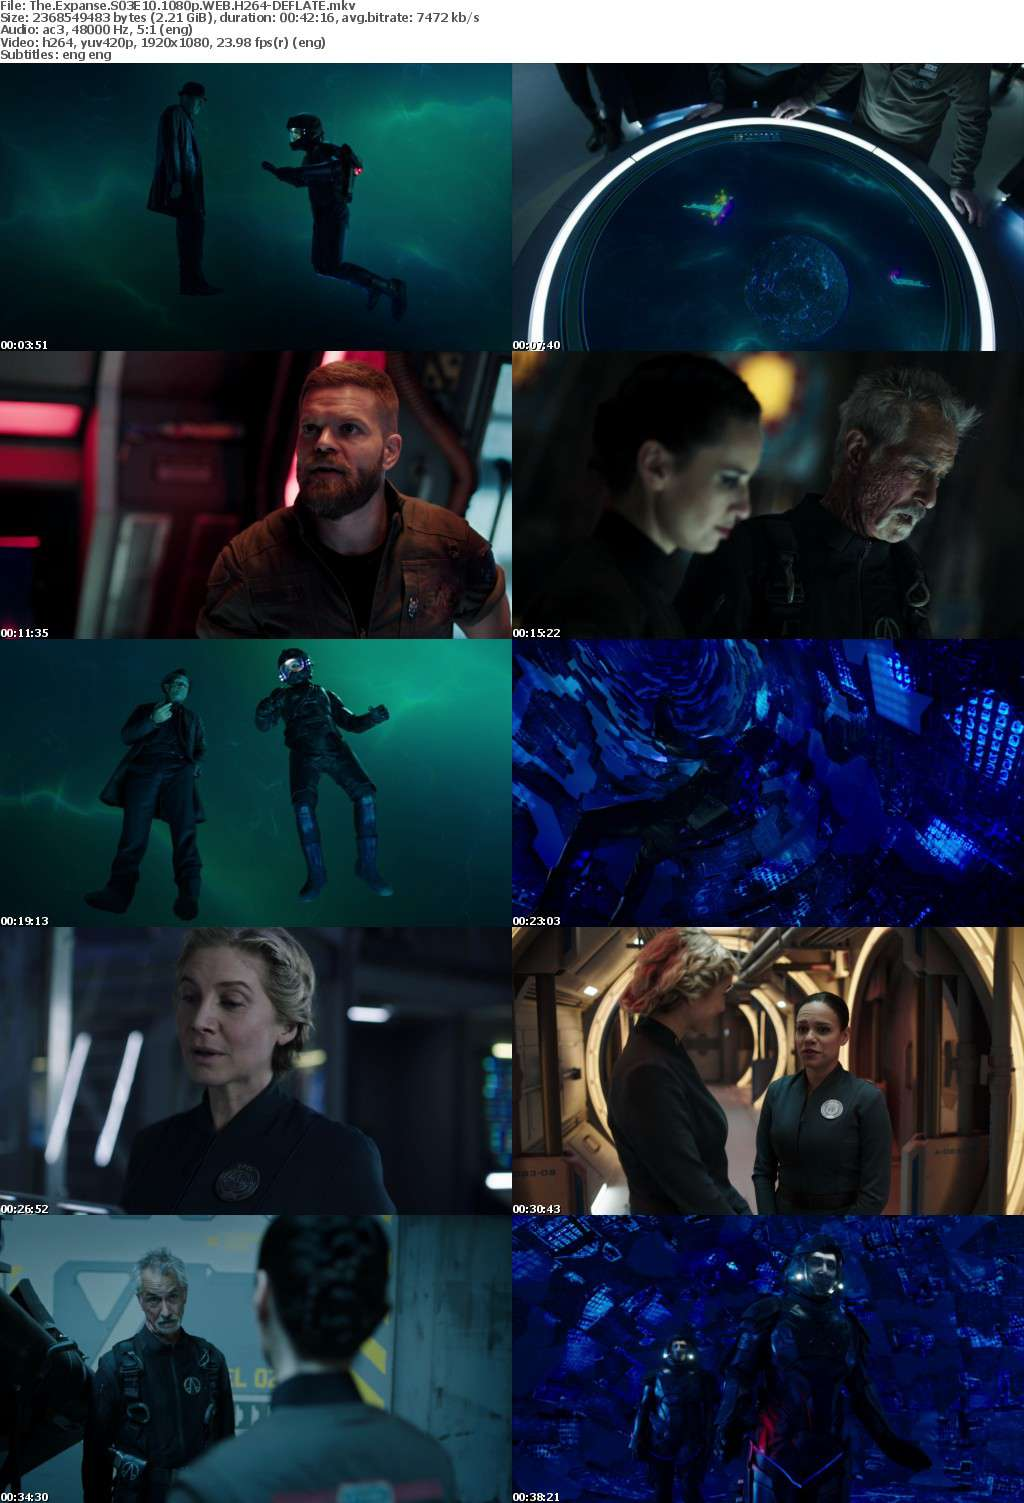 The Expanse S03E10 1080p WEB H264-DEFLATE